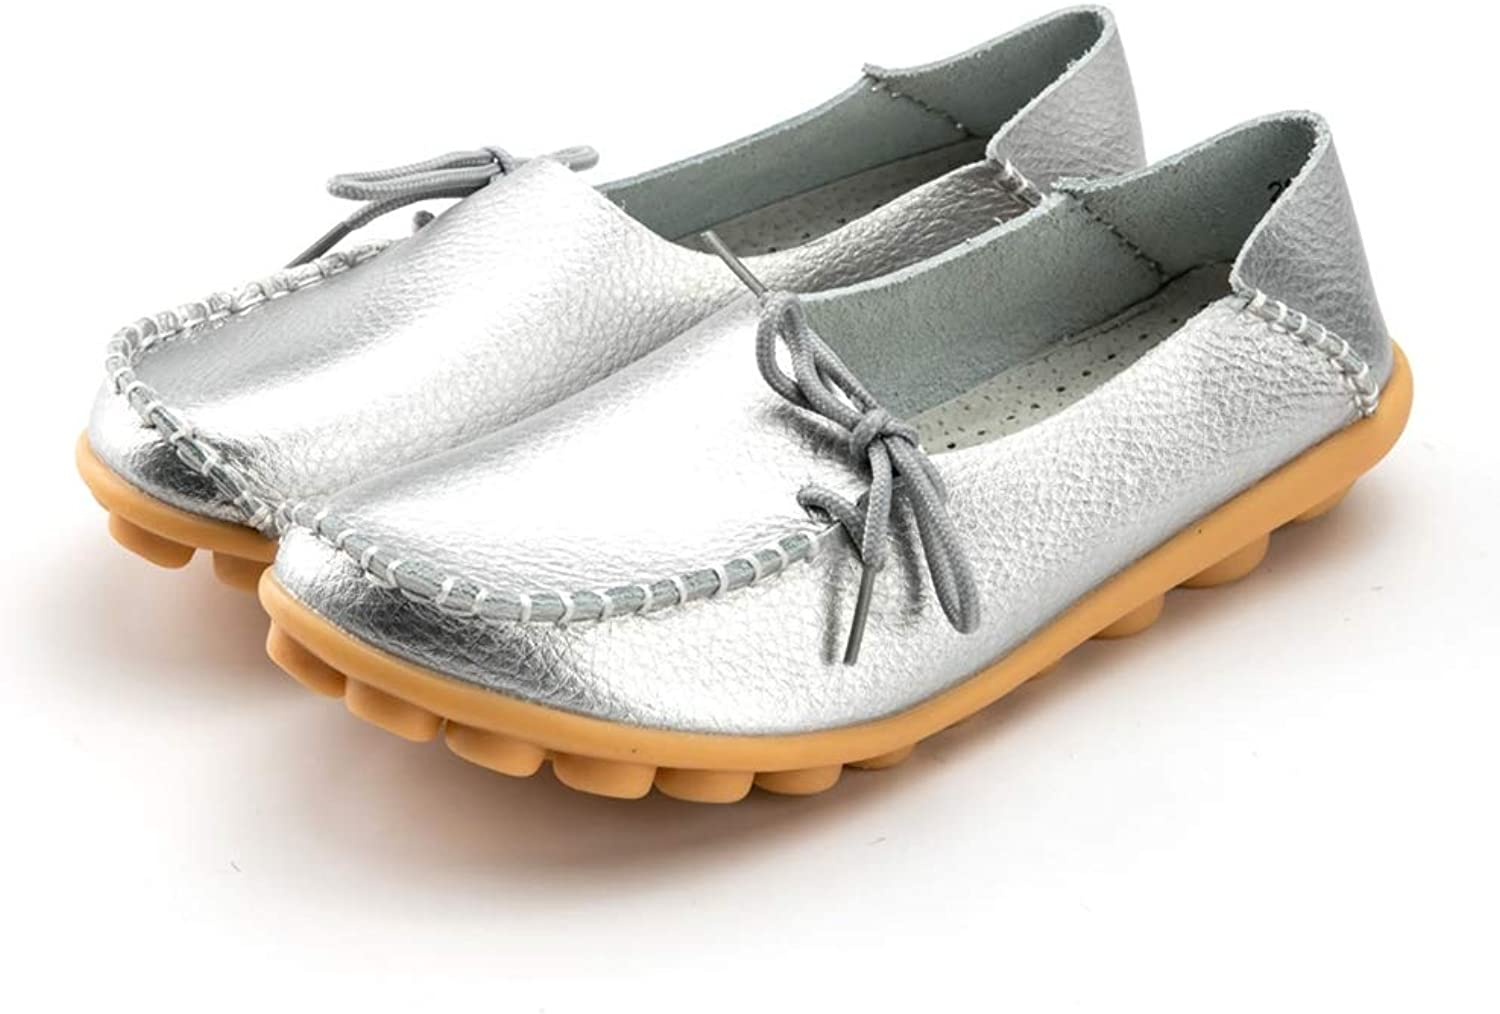 T-JULY Women Genuine Leather Flat Moccasin Loafer Casual Ladies Slip On Cow Driving Fashion Ballet Boat Summer shoes